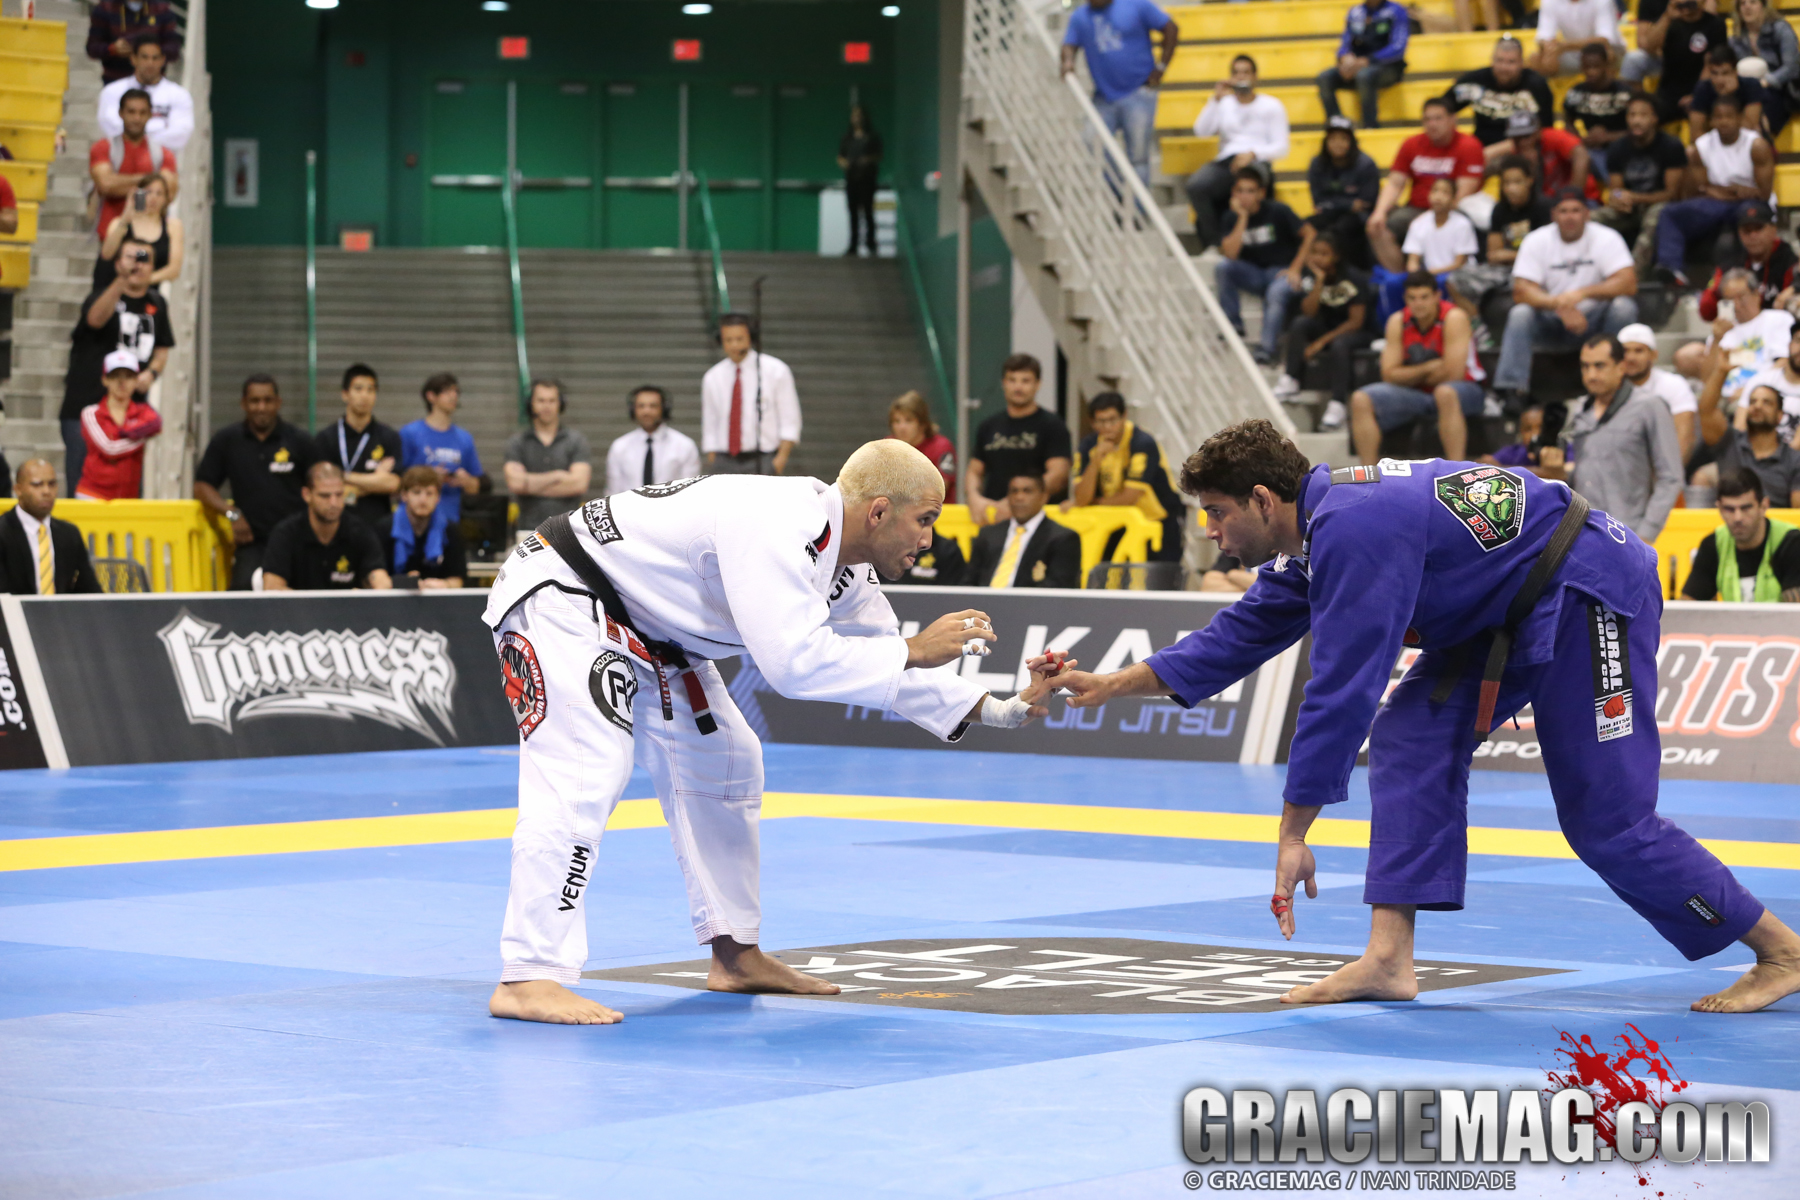 Rodolfo is now in the superheavy and Buchecha sticks to ultra-heavy